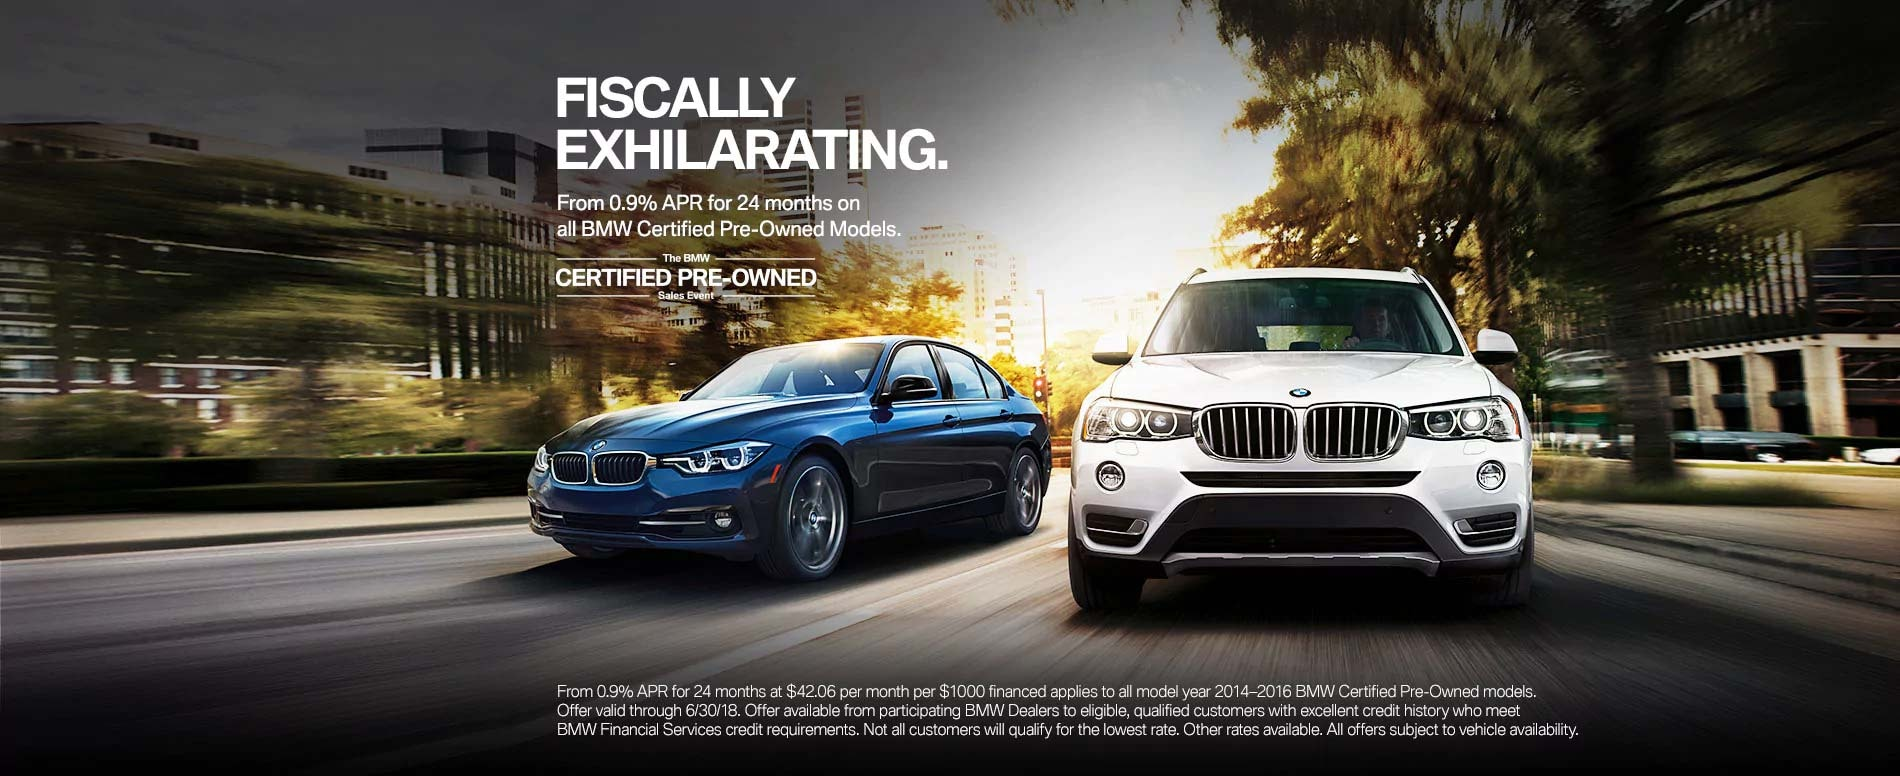 tampa auto riverview repossessions fl for cars used hillsborough loans sale county in bmw after